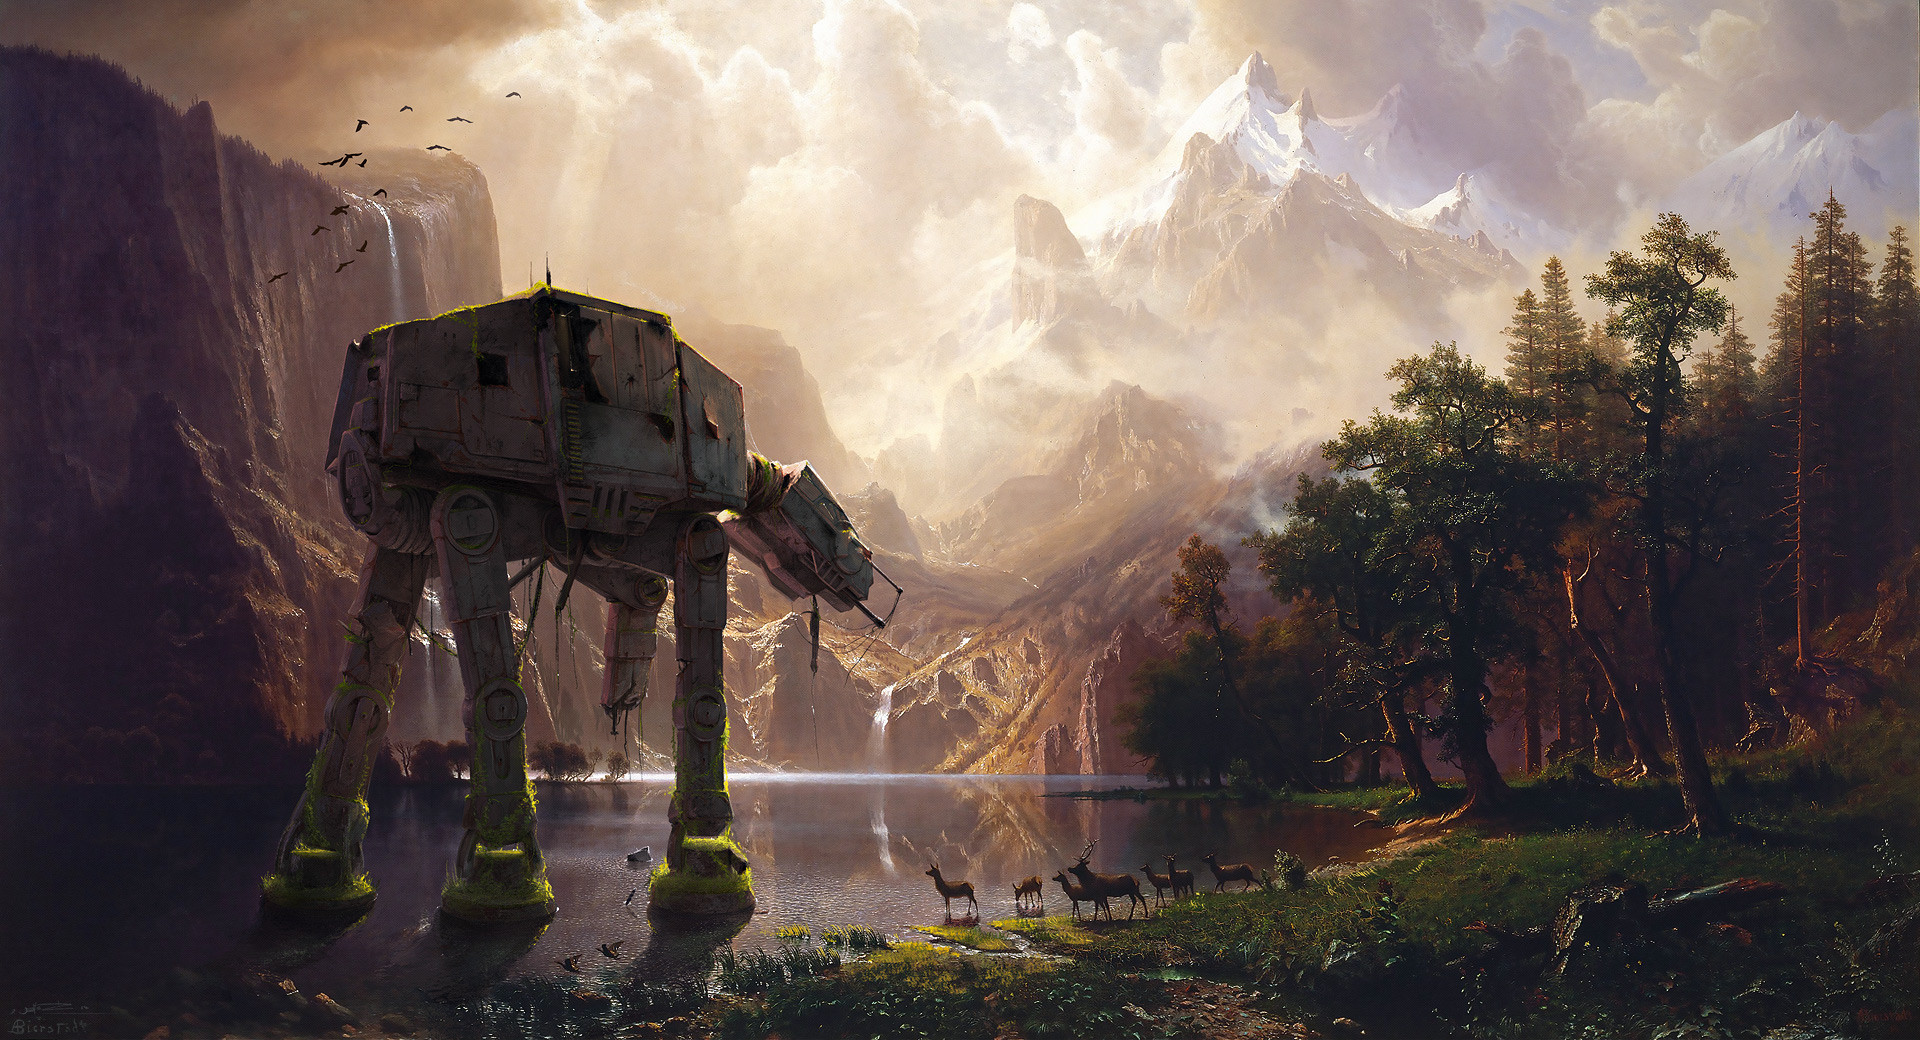 1440p Wallpaper Star Wars Posted By Ryan Peltier